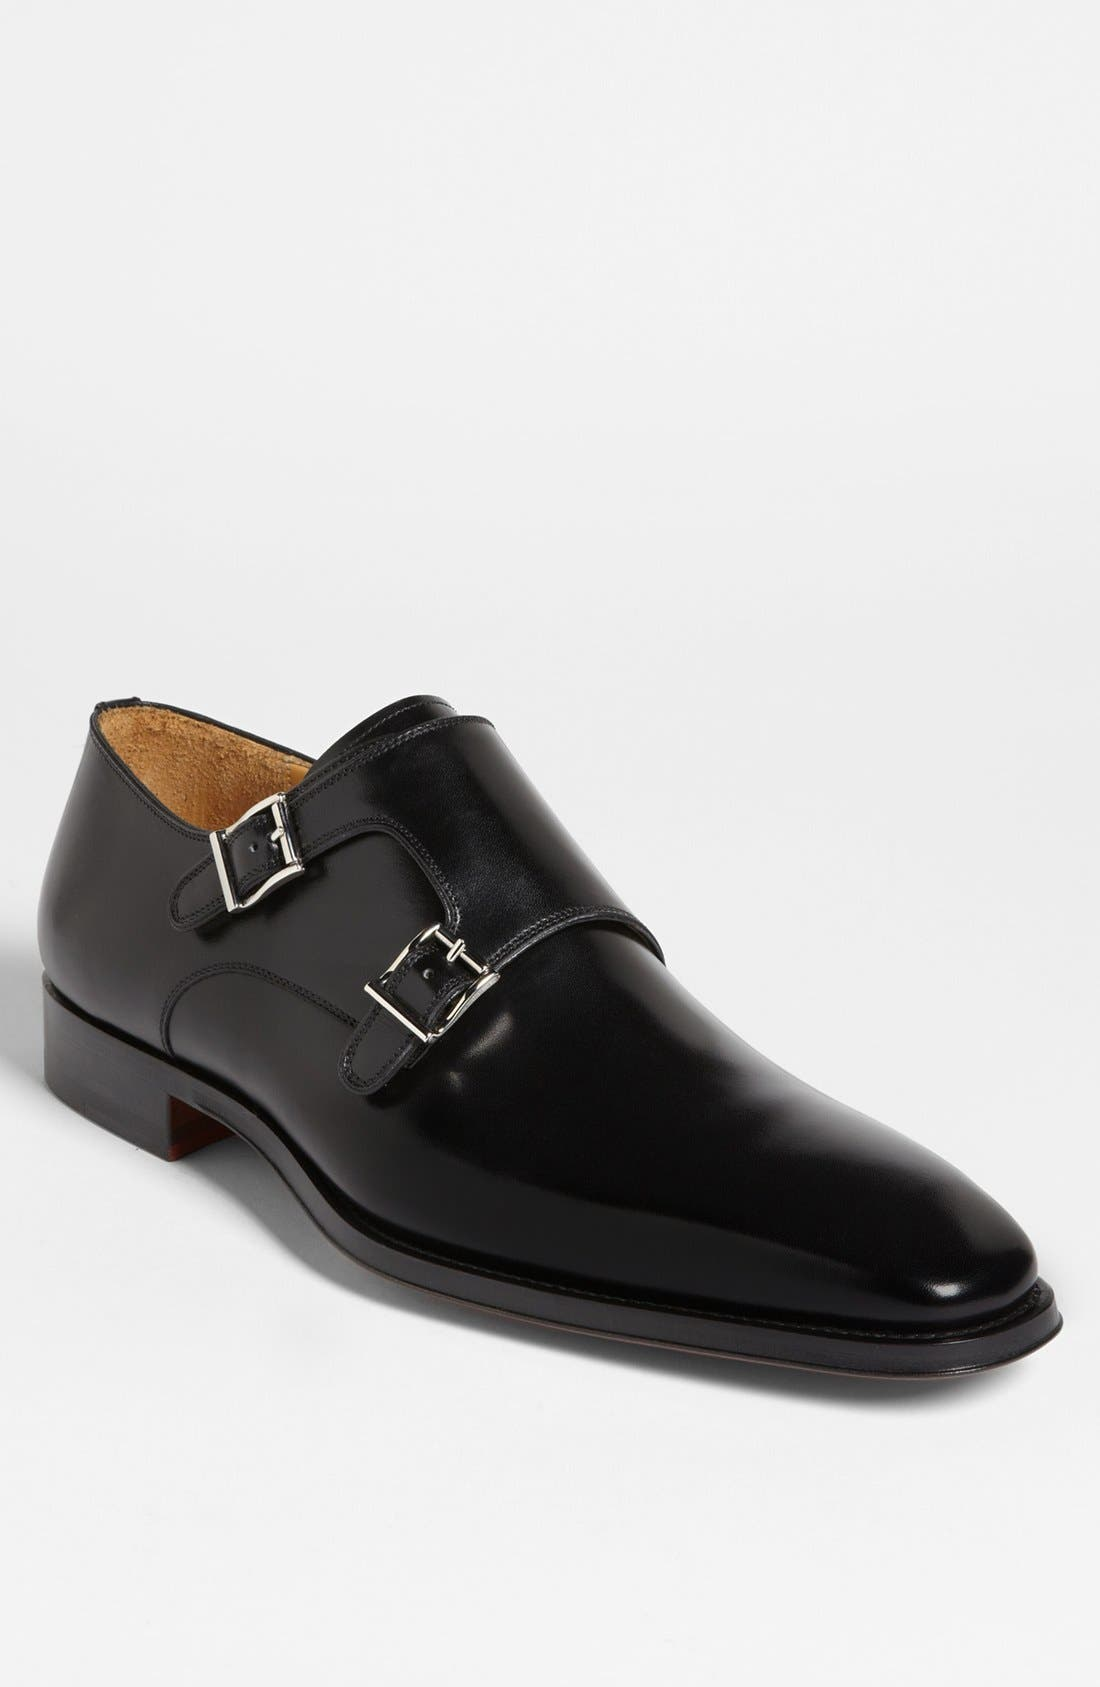 Alternate Image 1 Selected - Magnanni 'Miro' Double Monk Strap Shoe (Men)